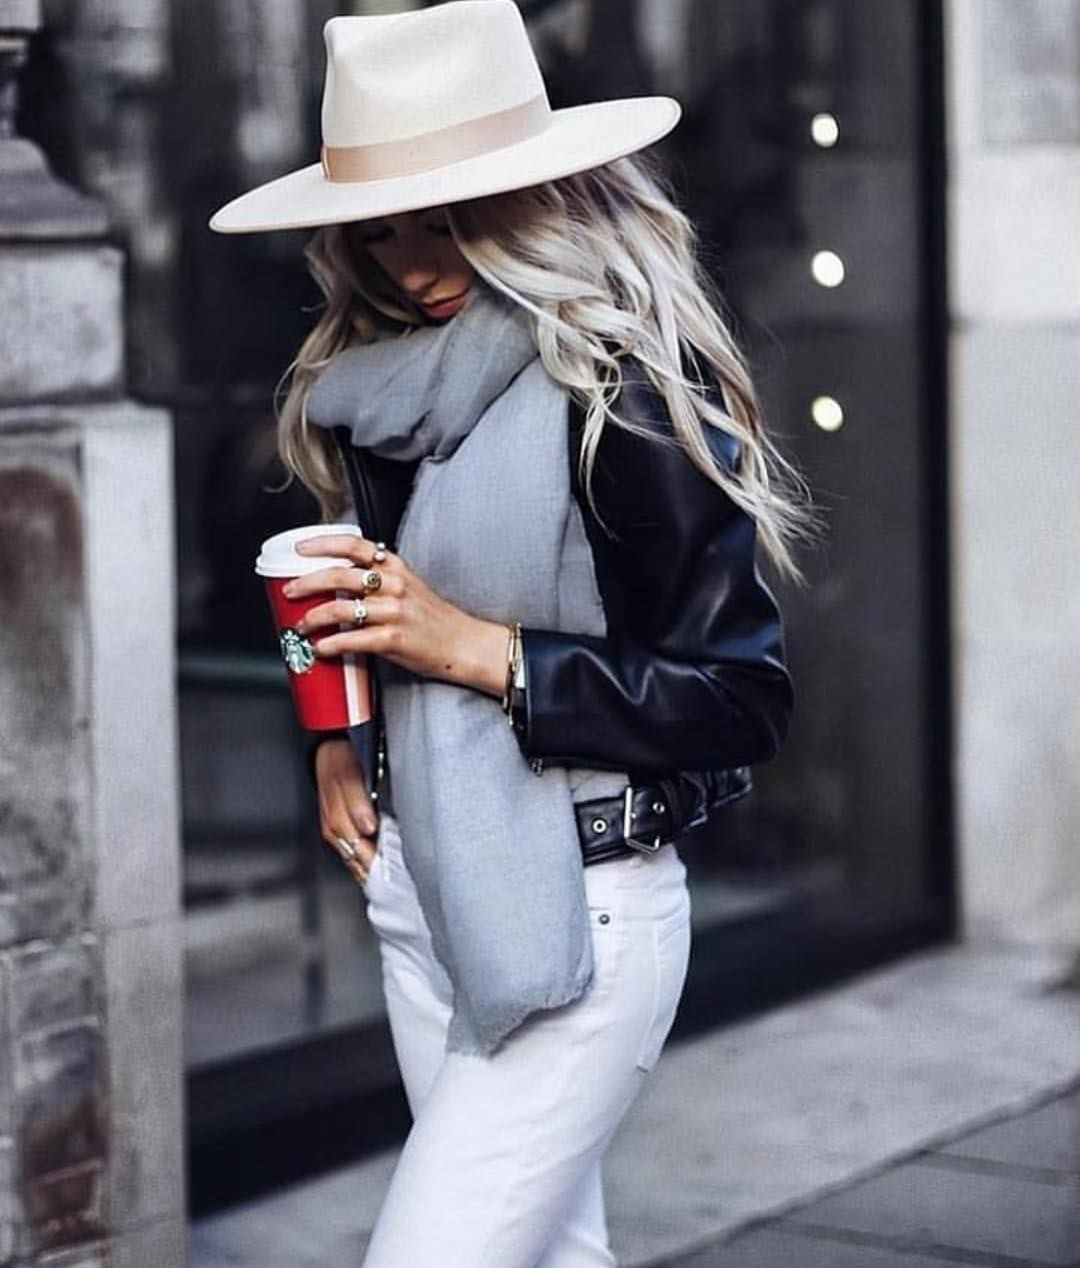 Fedora Hat, Grey Scarf With Black Leather Jacket And White Jeans: Fall Essentials 2020